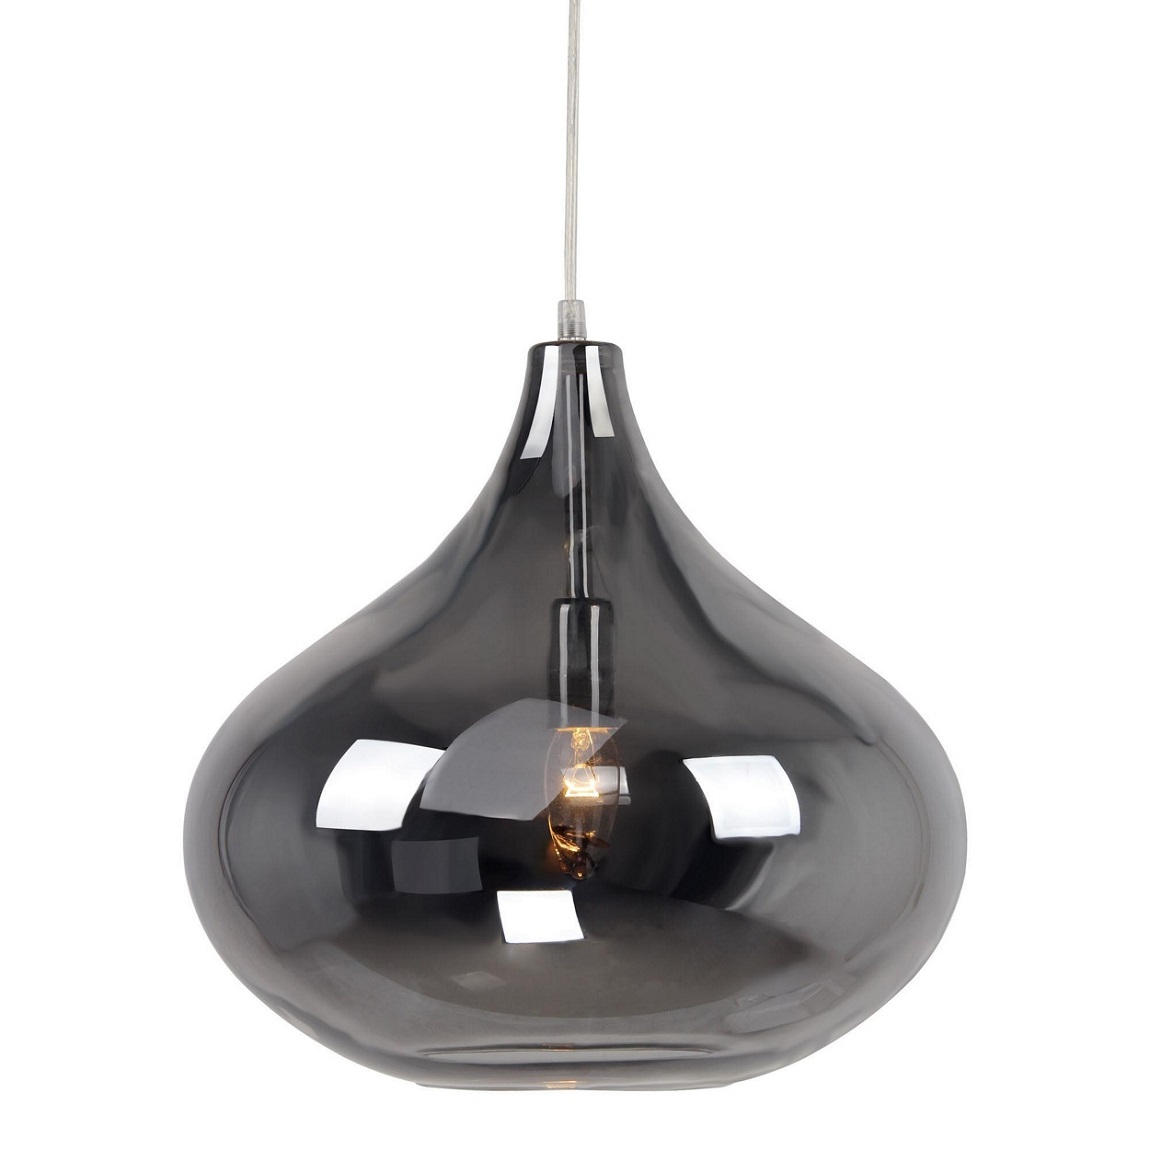 Pendant Ceiling Light Modern Smoke Glass Debenhams Home